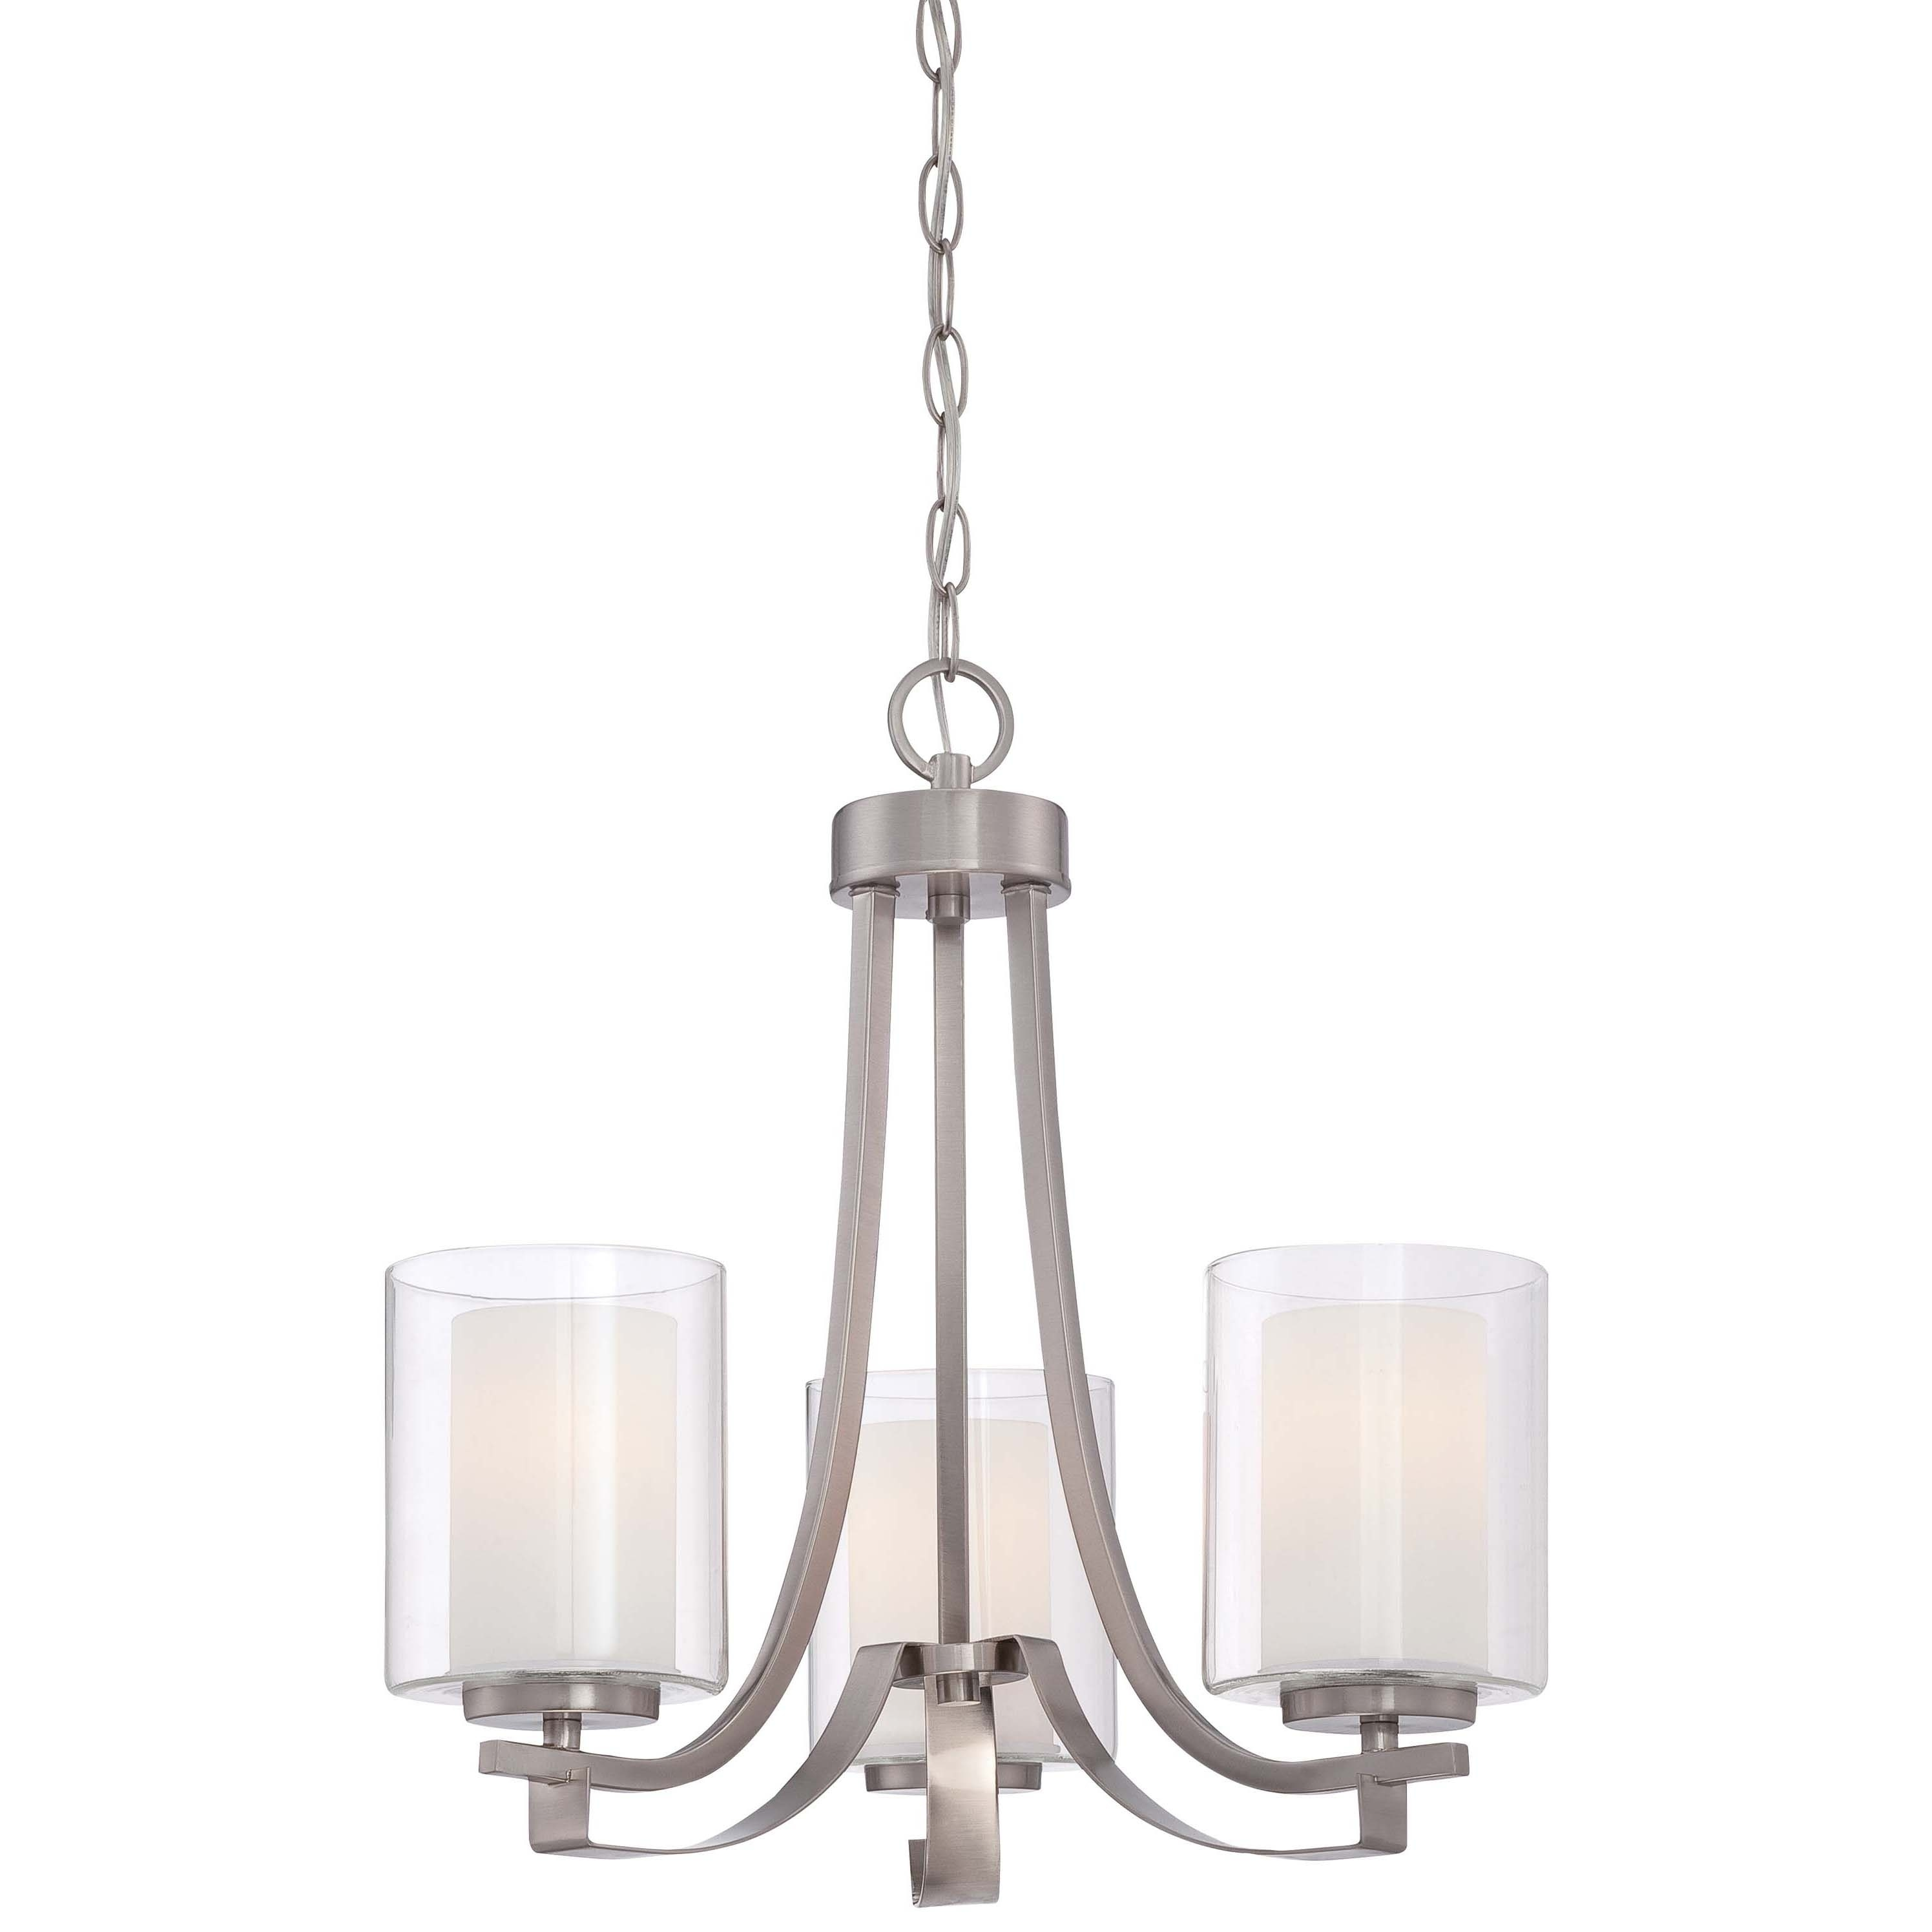 Minka Lavery Parsons Studio 3 Light Chandelier Free Shipping Today 18046361